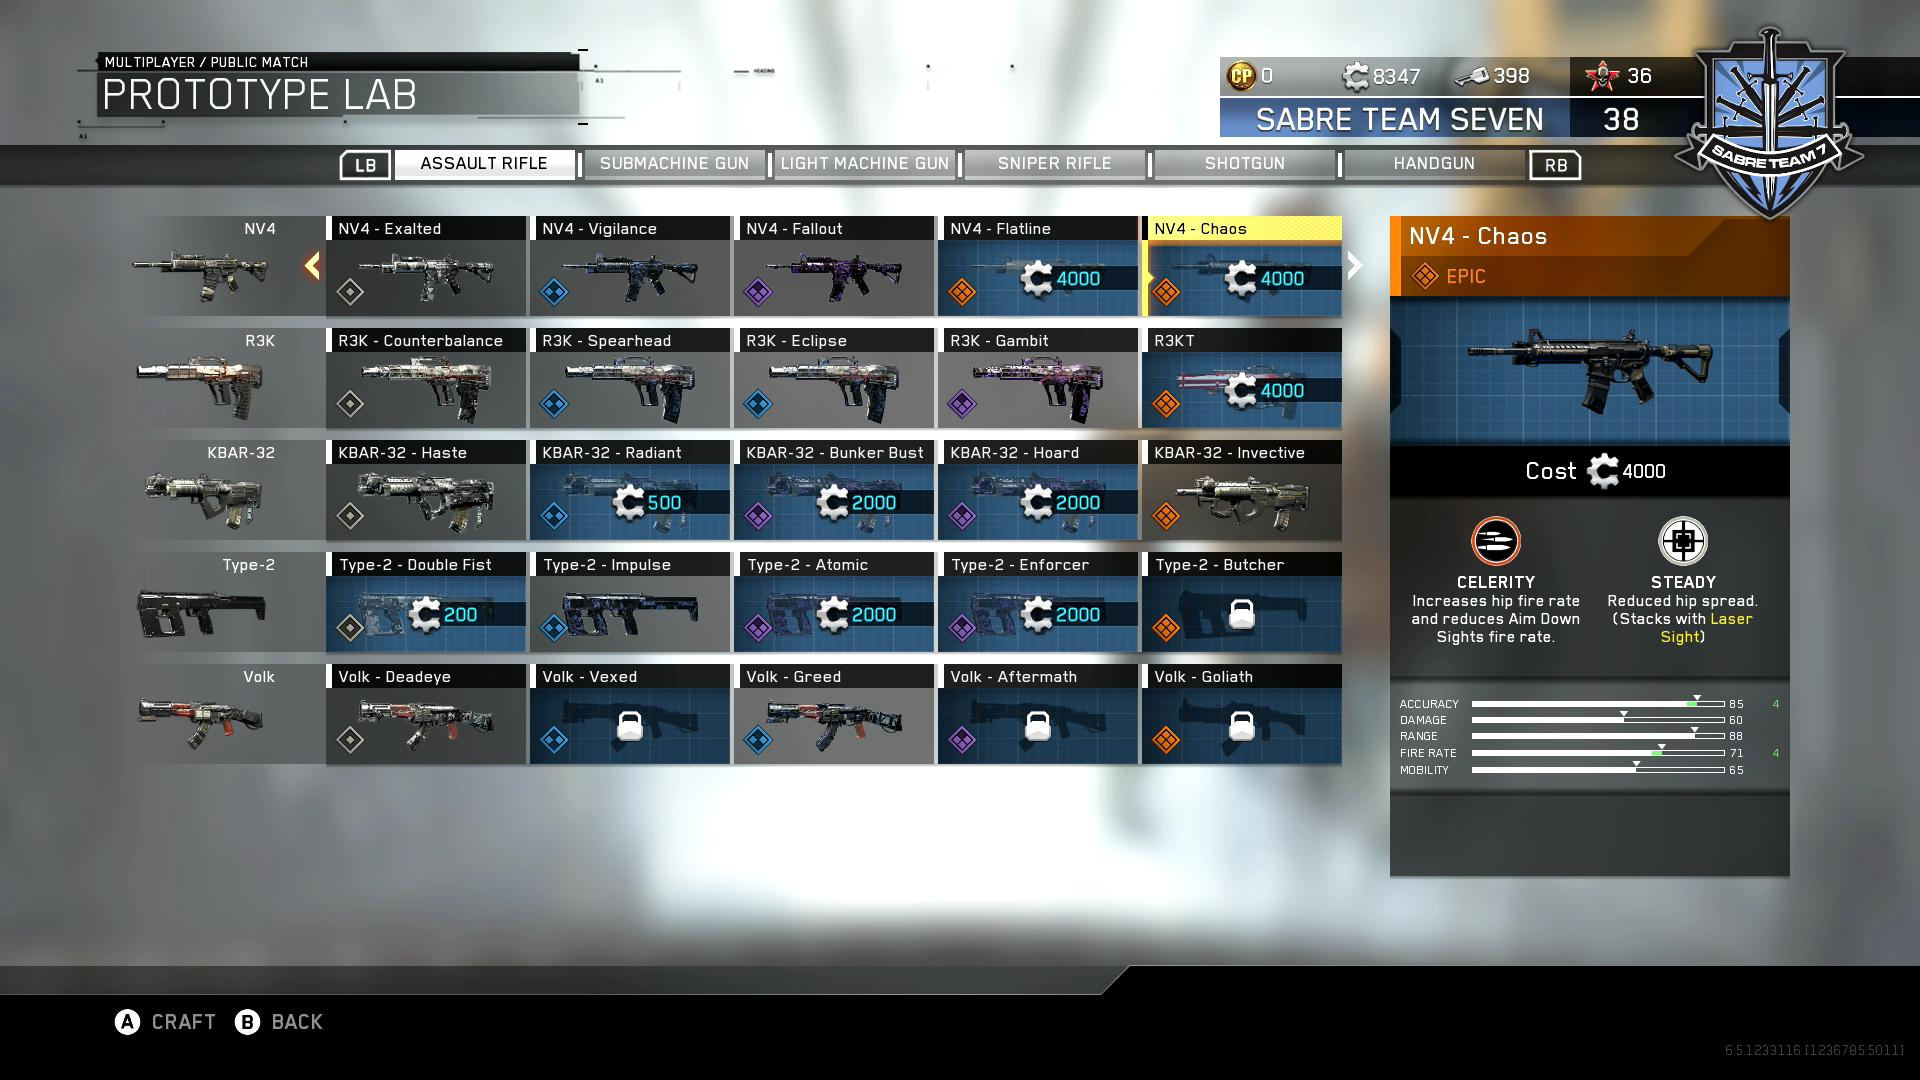 Call of duty infinite warfare all new weapon variants stats and